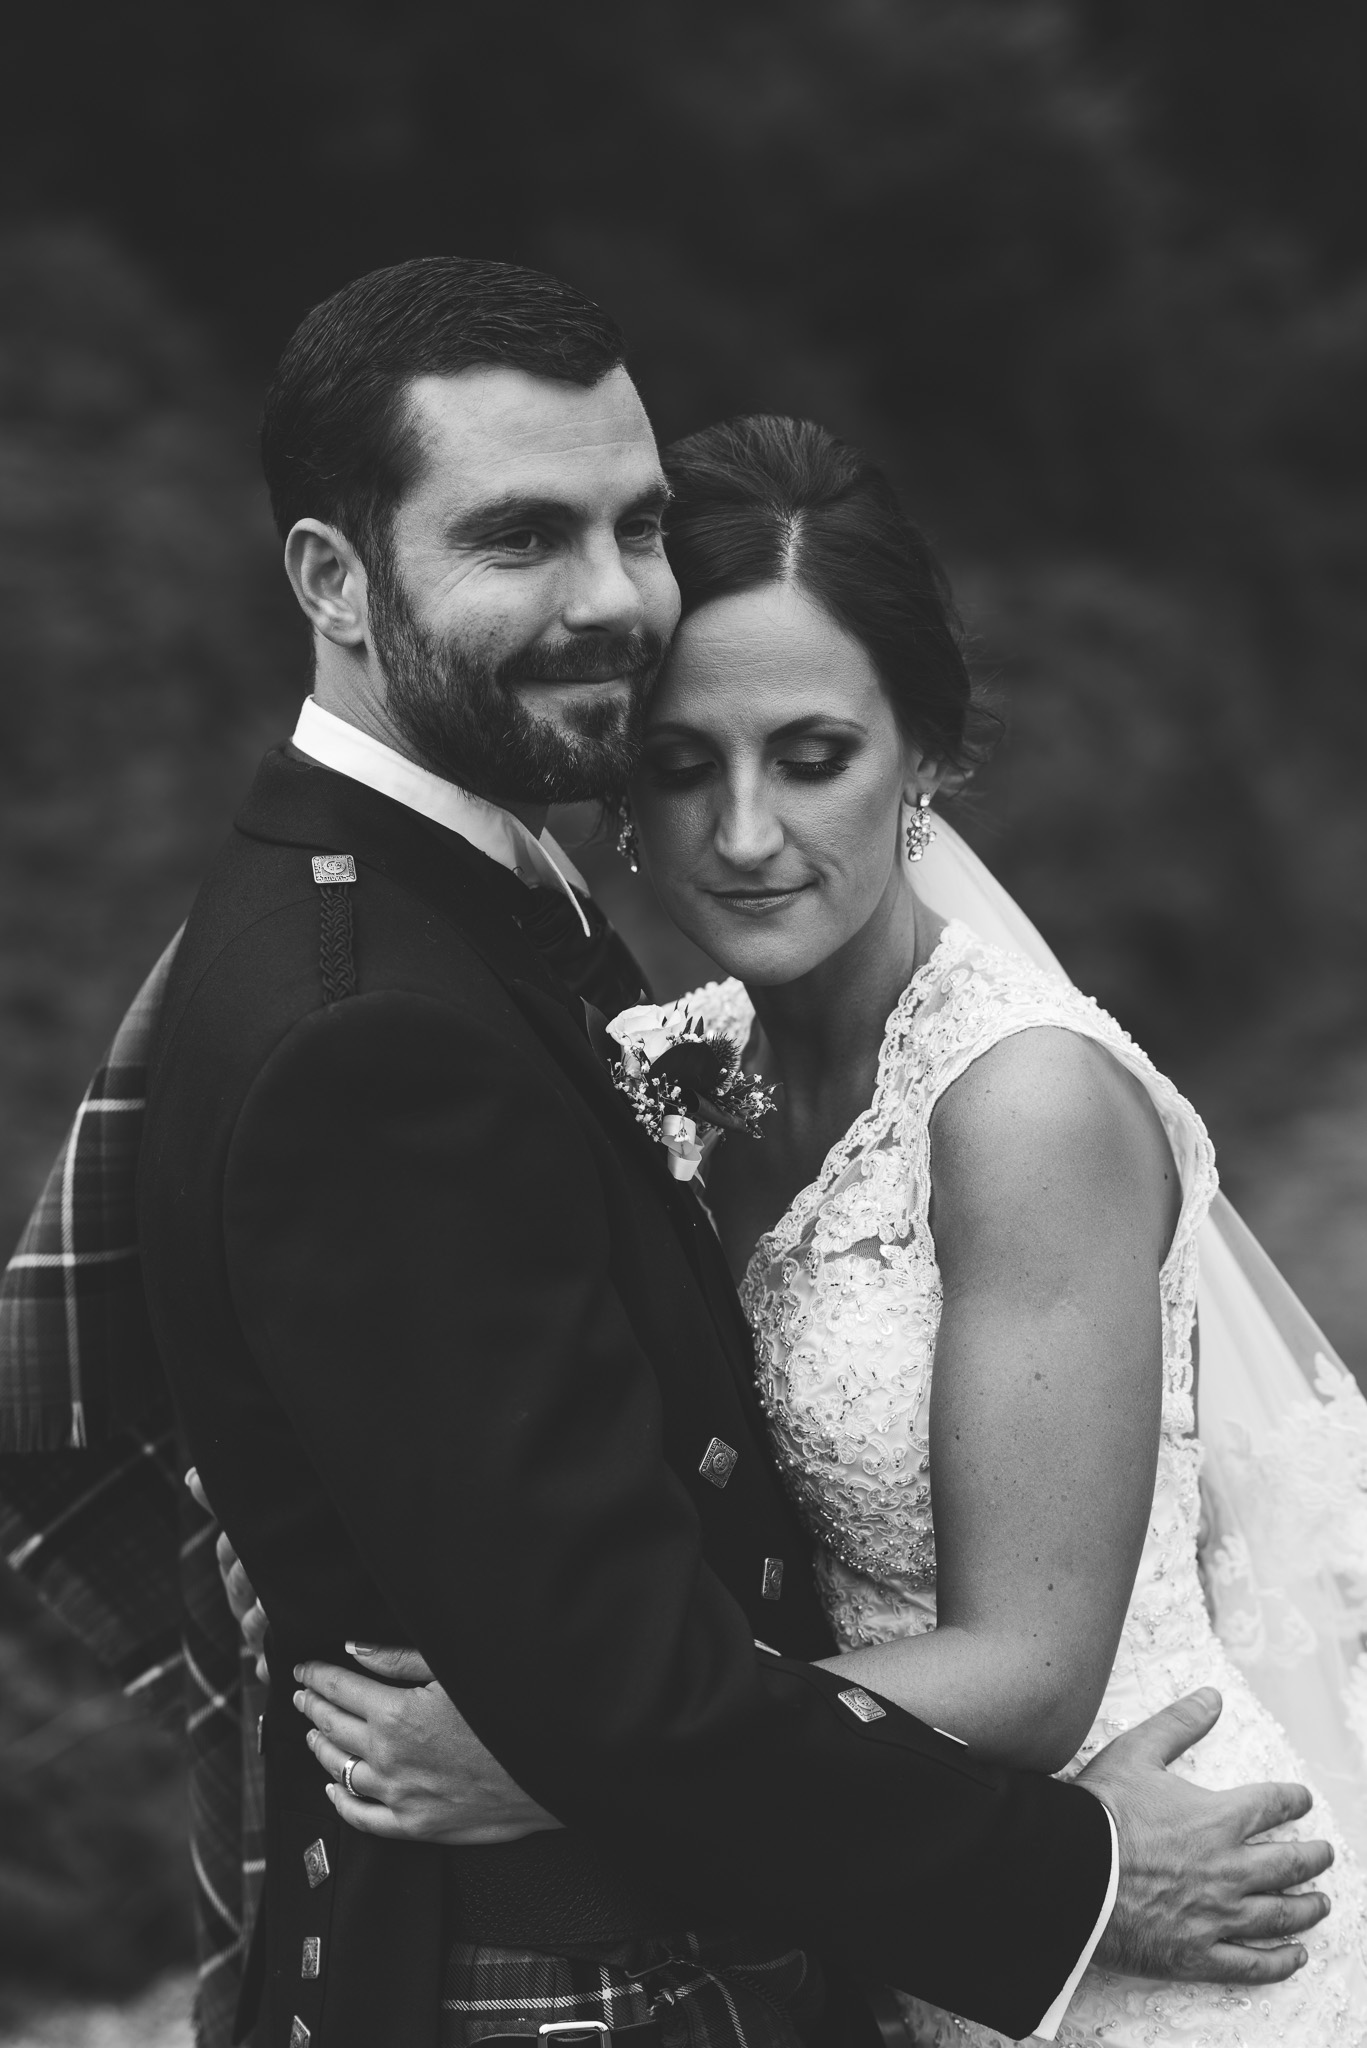 Bride and Groom at Gleddoch House Wedding